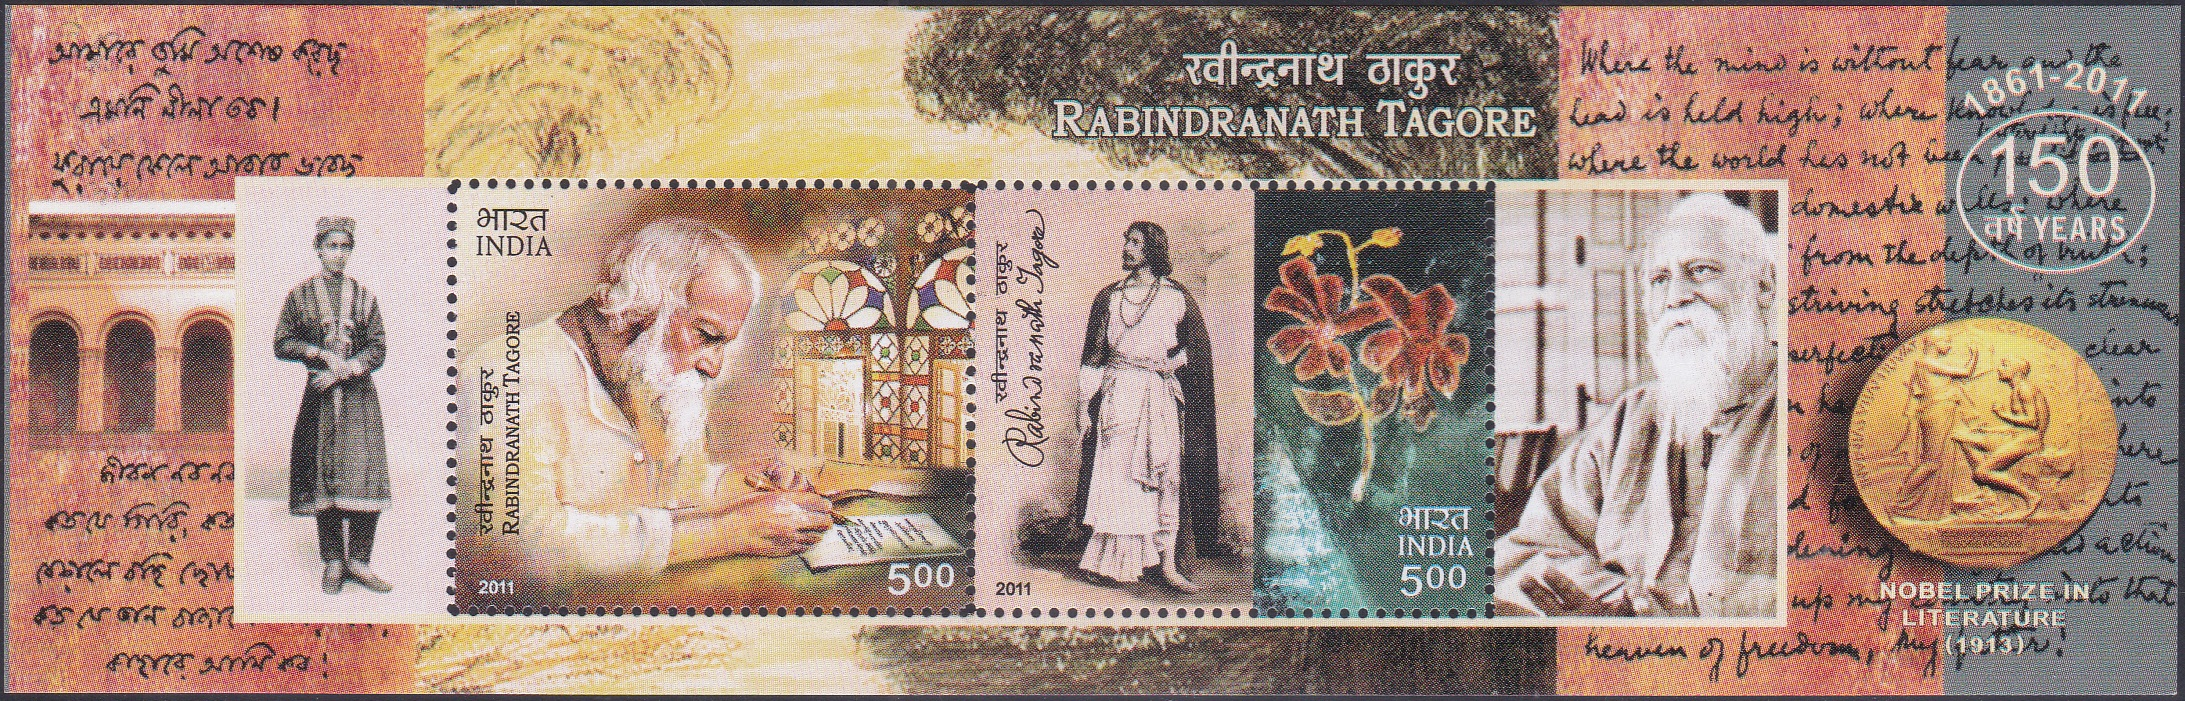 Rabindra Nath Tagore as Writer, Stage Actor and Painter